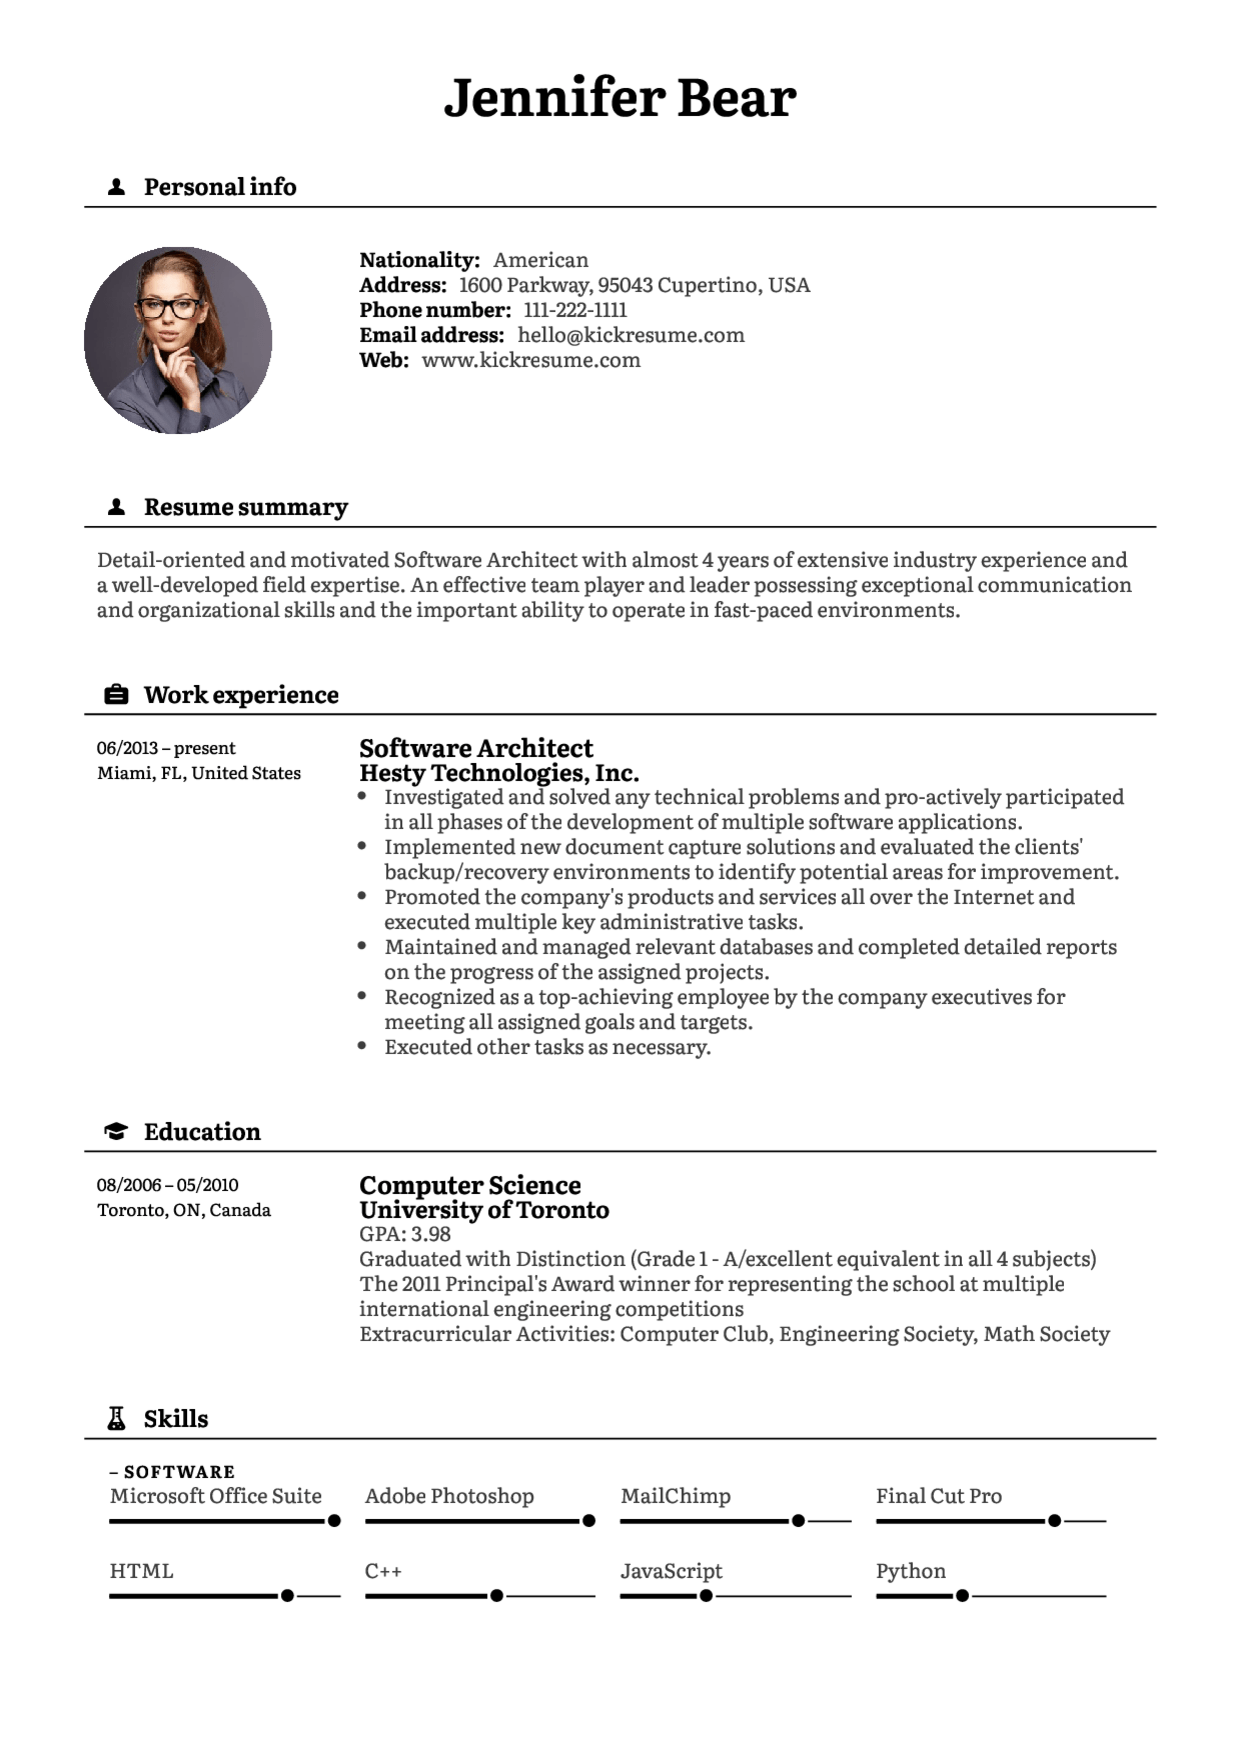 Kickresume  Create a perfect resume in minutes and land